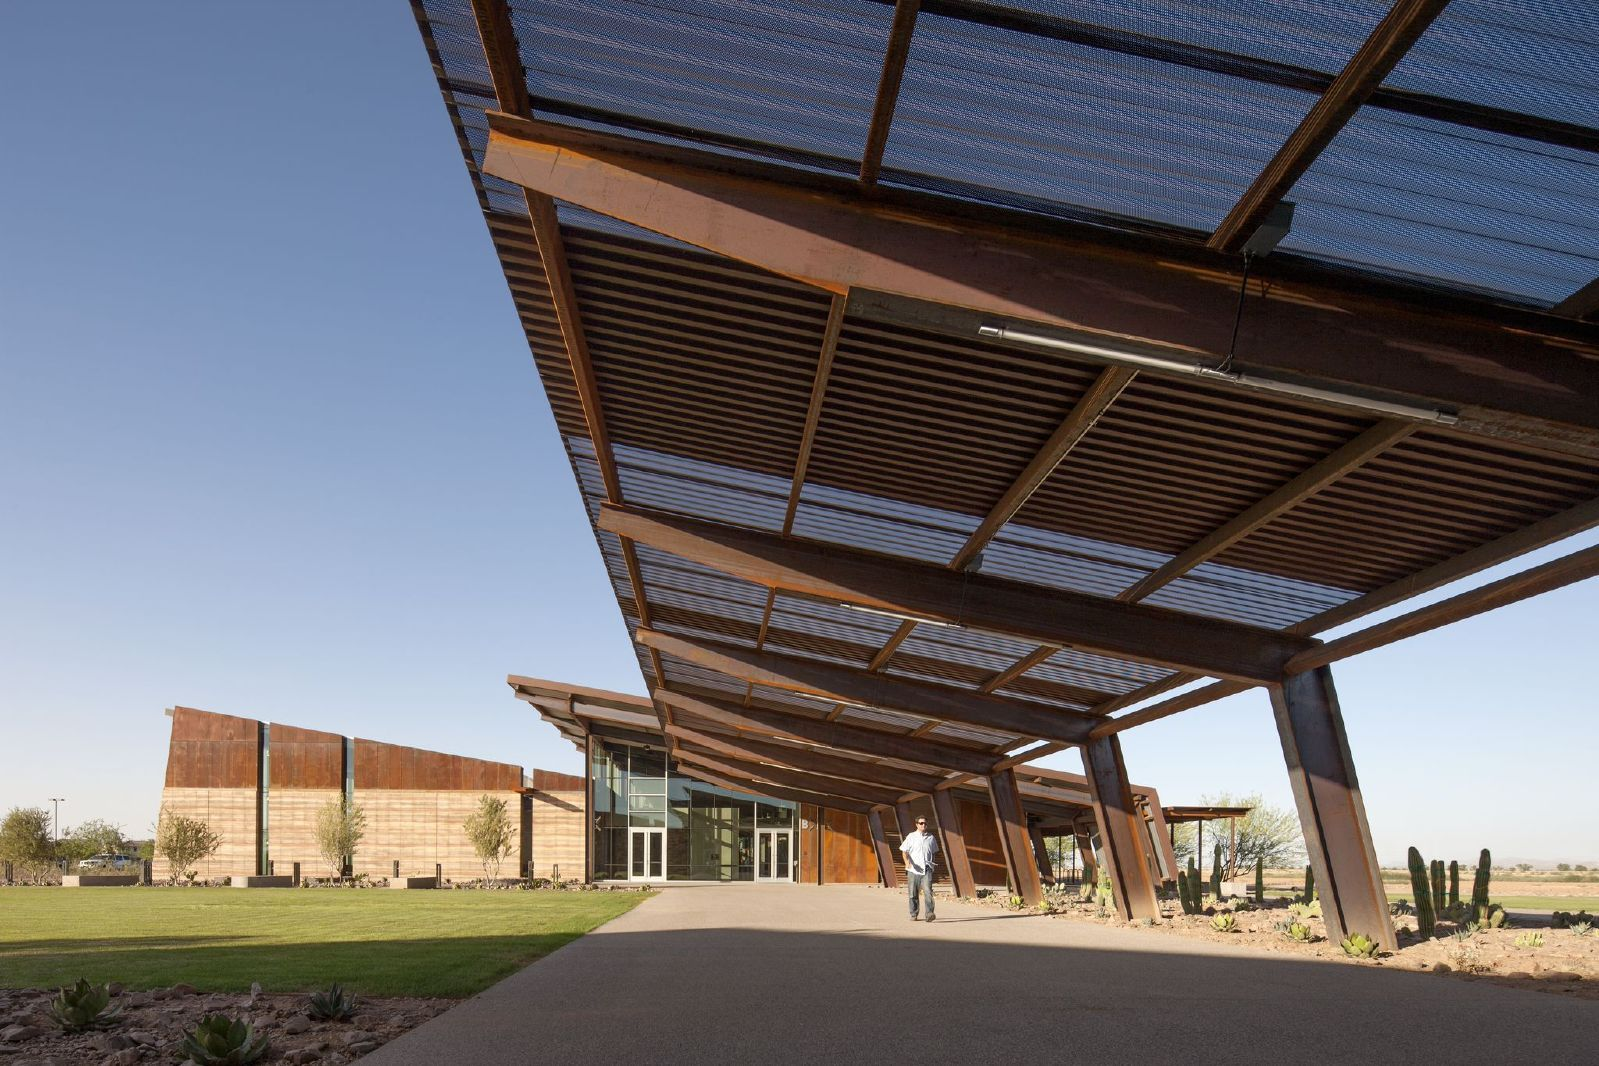 Educational Design. Education projects win AIA Design Awards. Architecture, Schools, AEC, EdTech